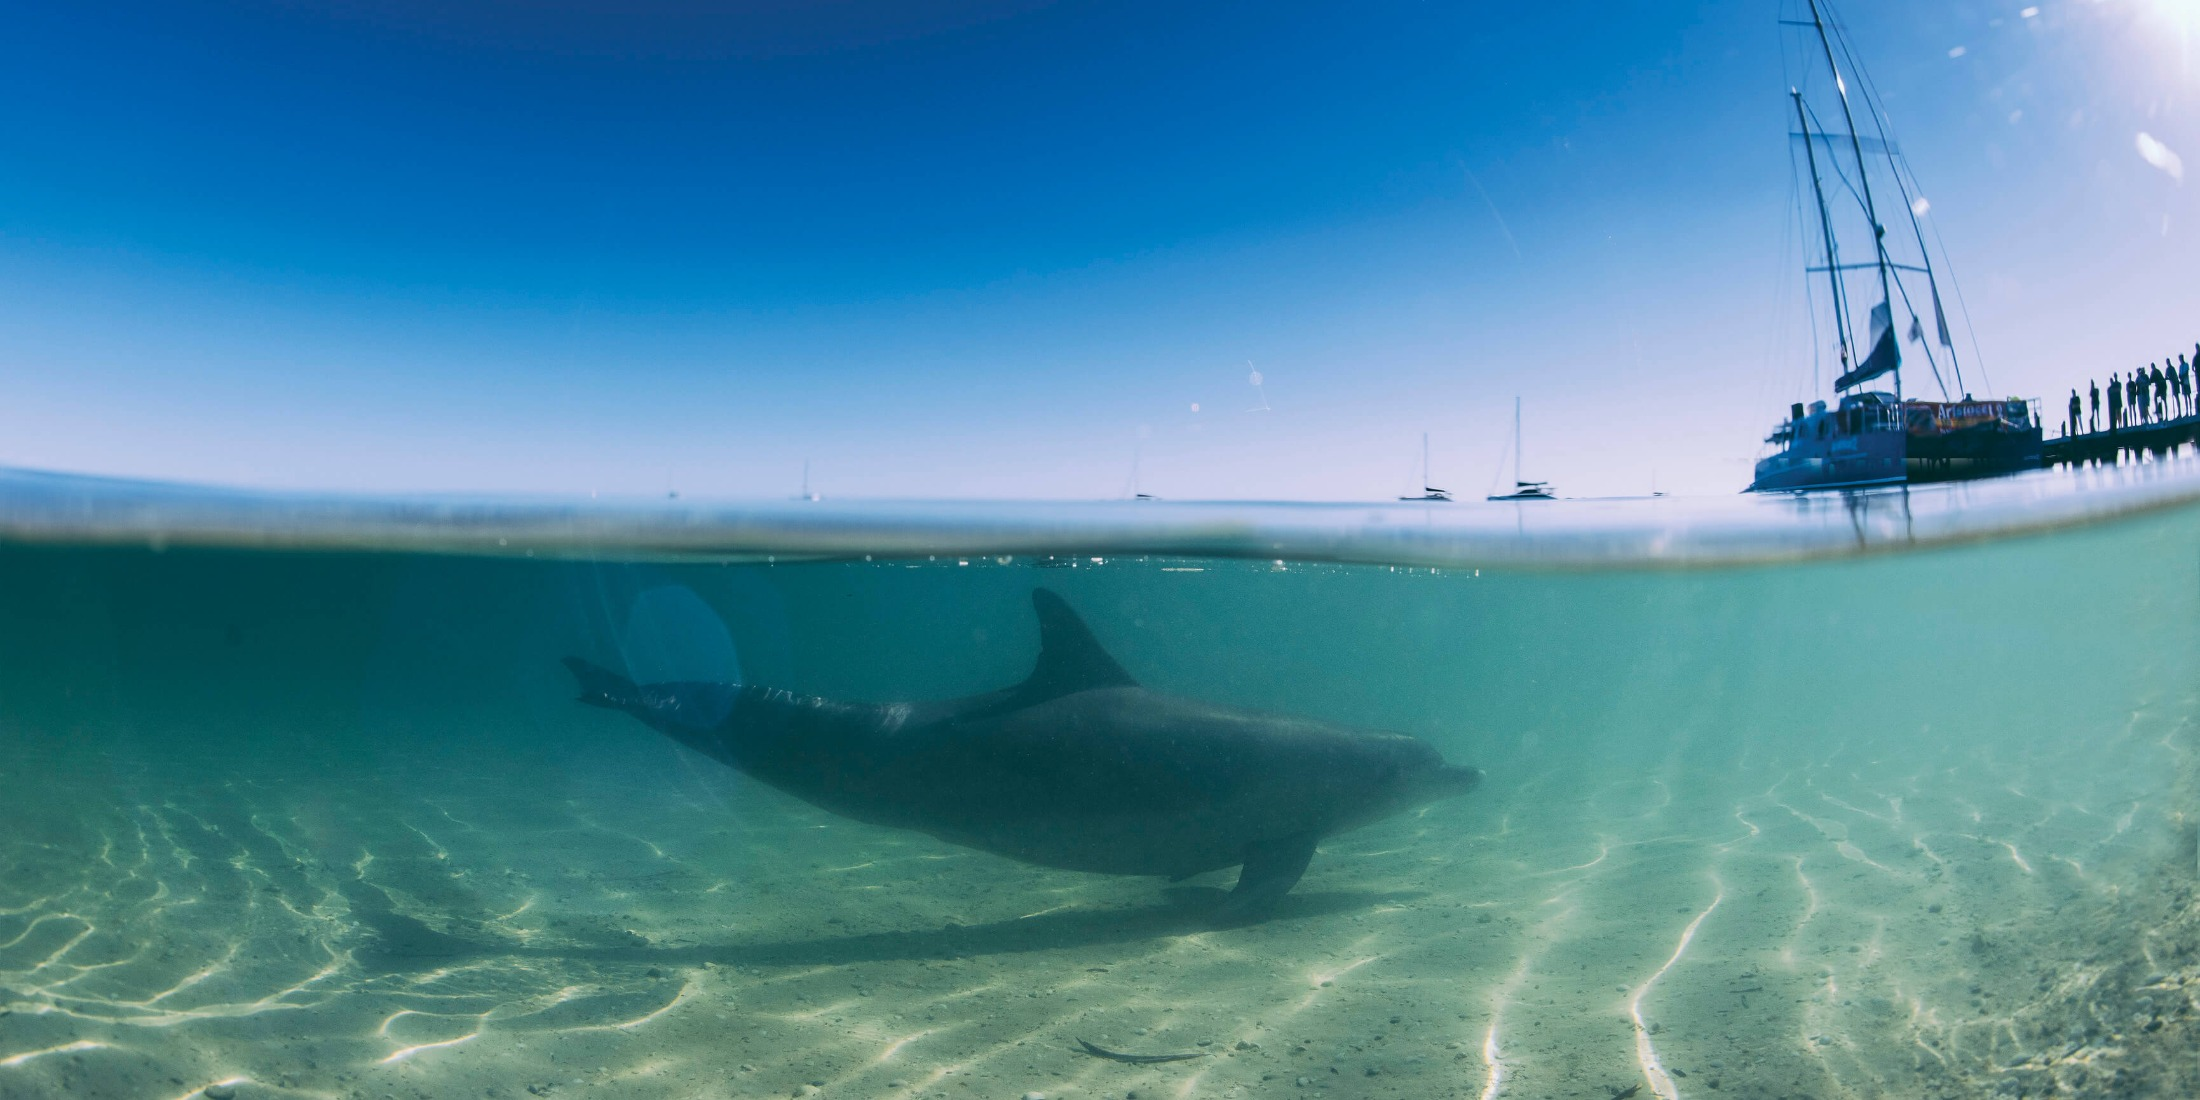 Dolphin at Monkey Mia, located in the Shark Bay World Heritage Area. credit: Tourism Western Australia